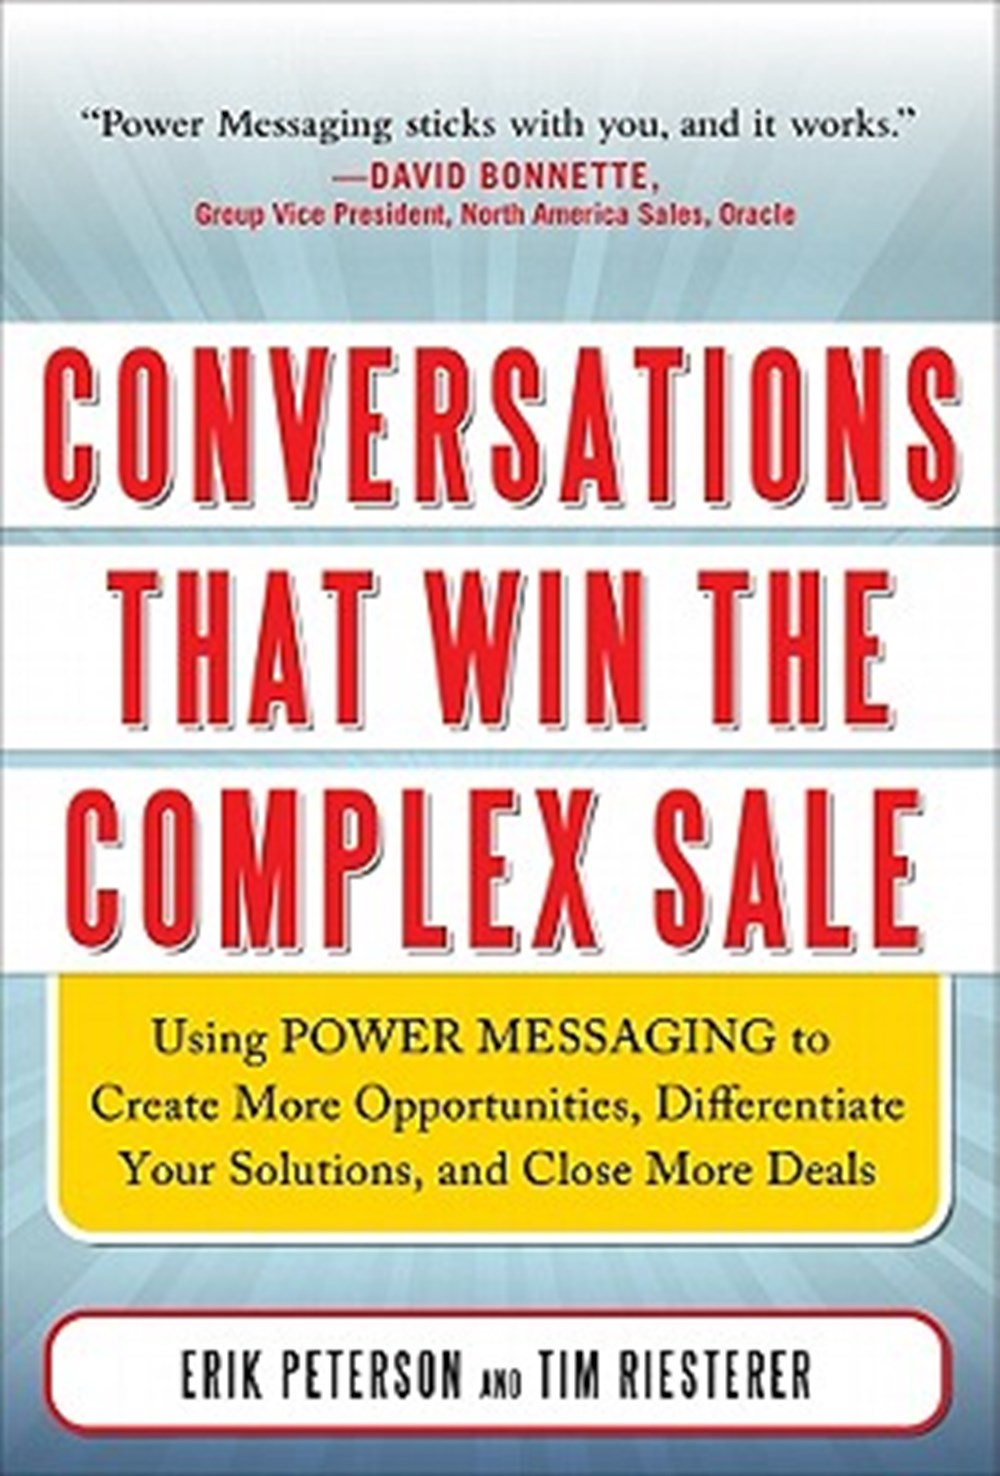 Conversations That Win the Complex Sale Using Power Messaging to Create More Opportunities, Differen